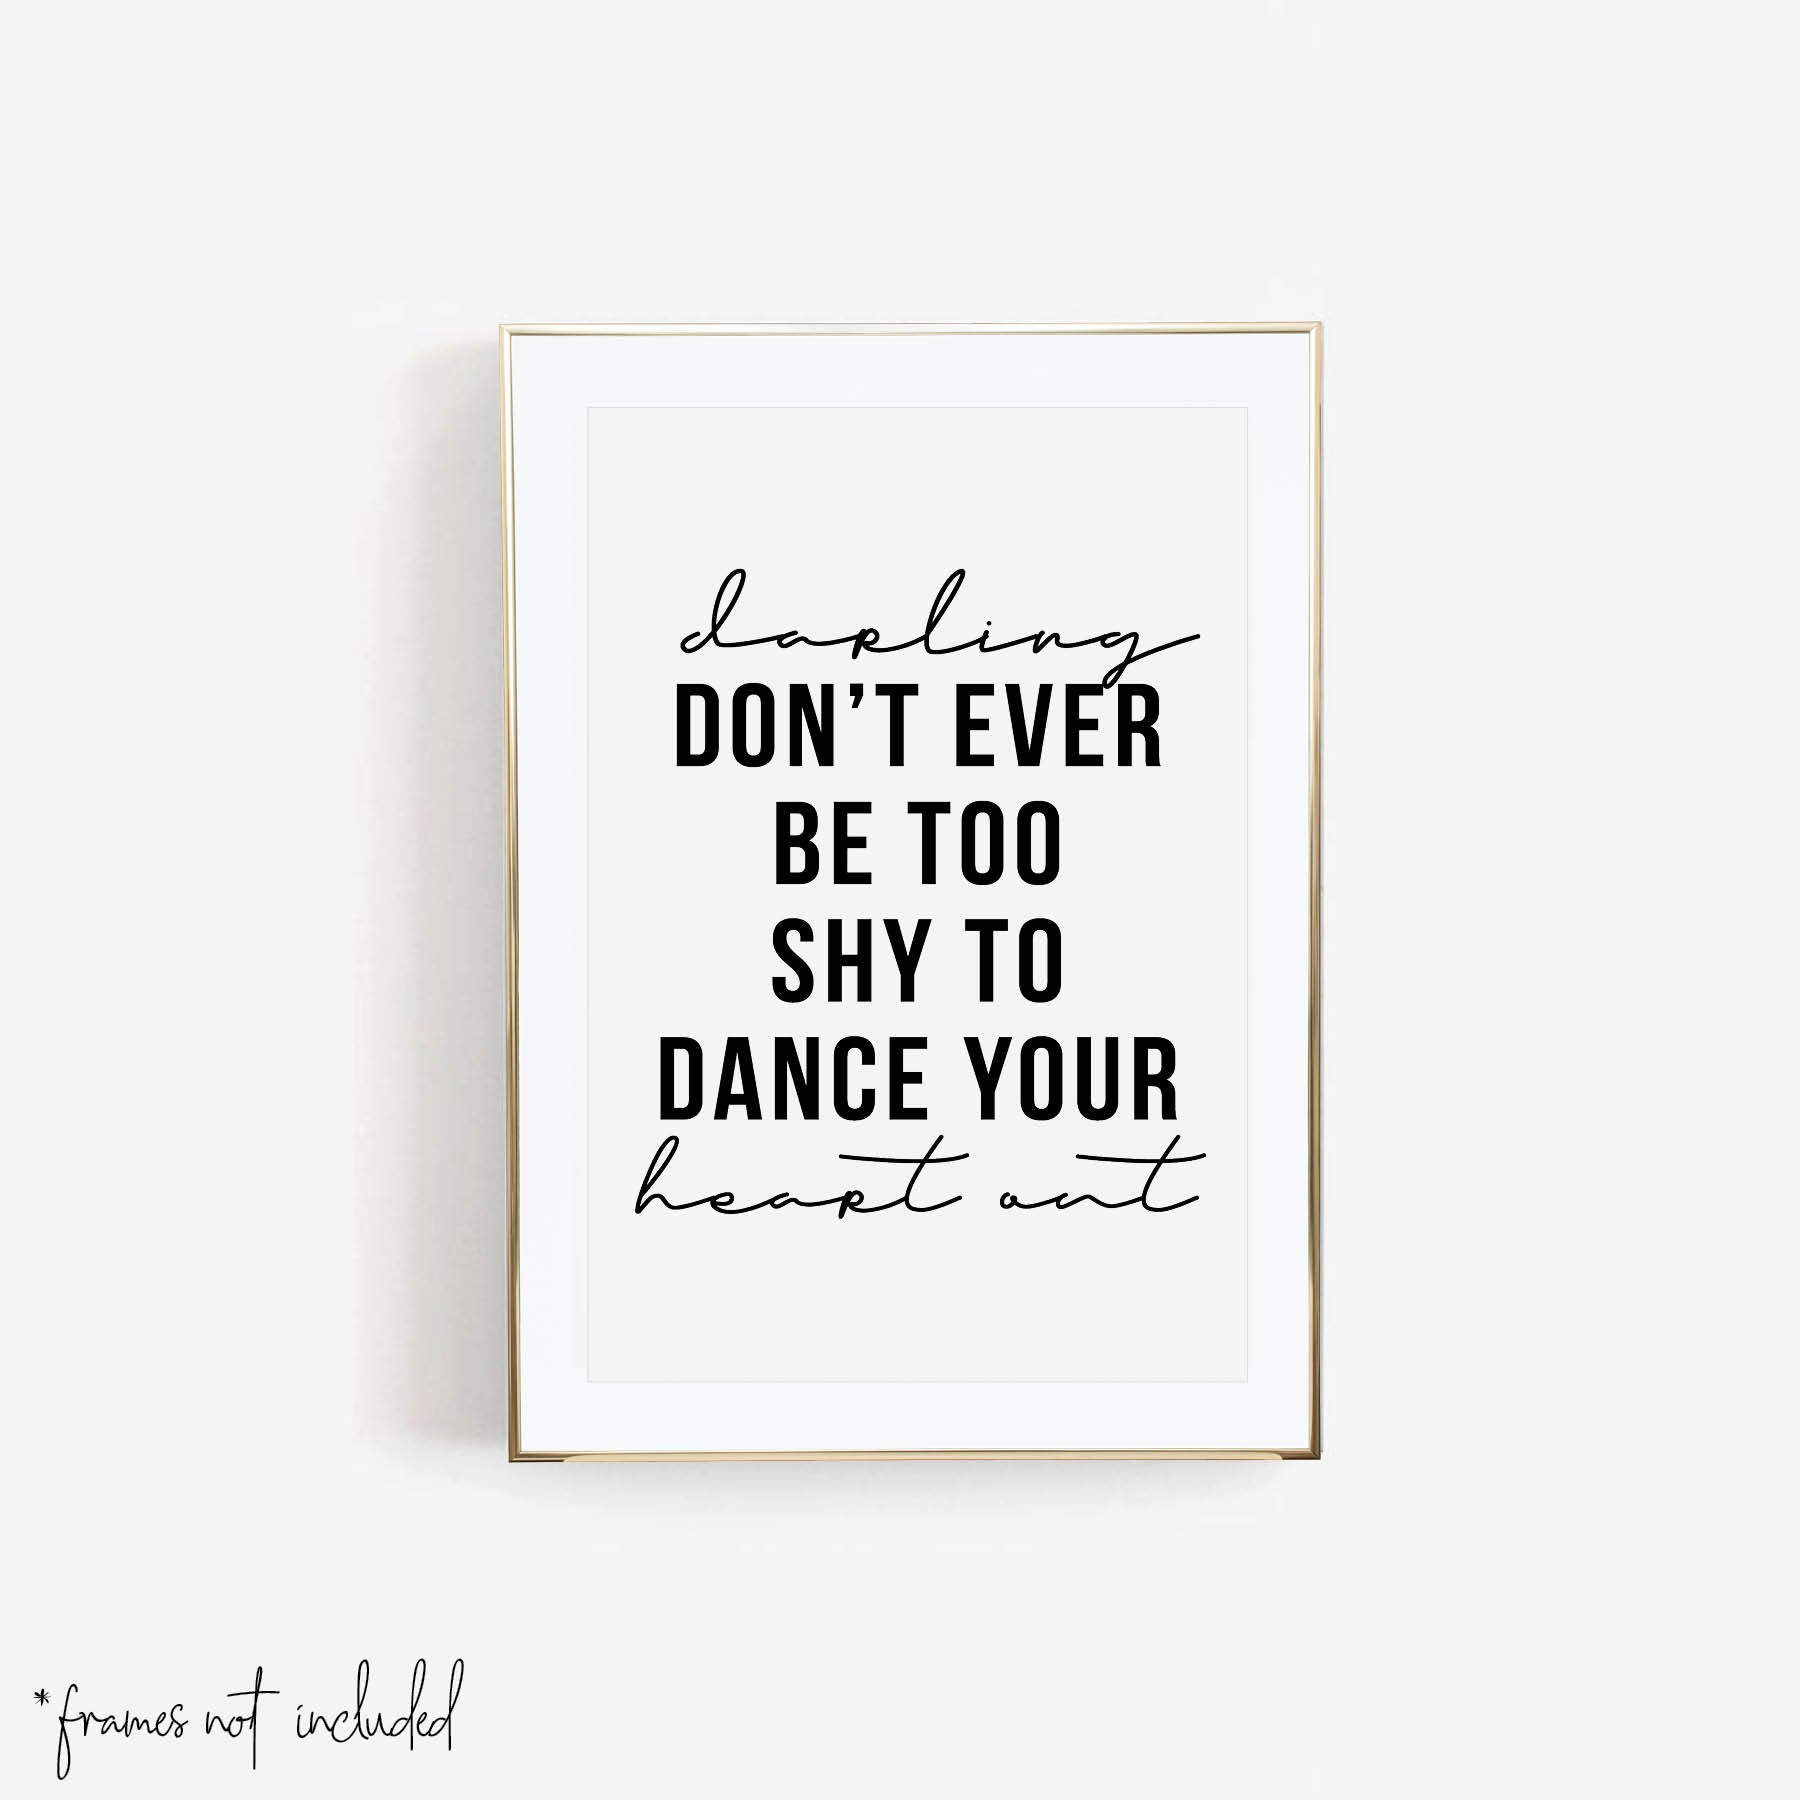 Darling, Don't Ever be Too Shy to Dance Your Heart Out Print